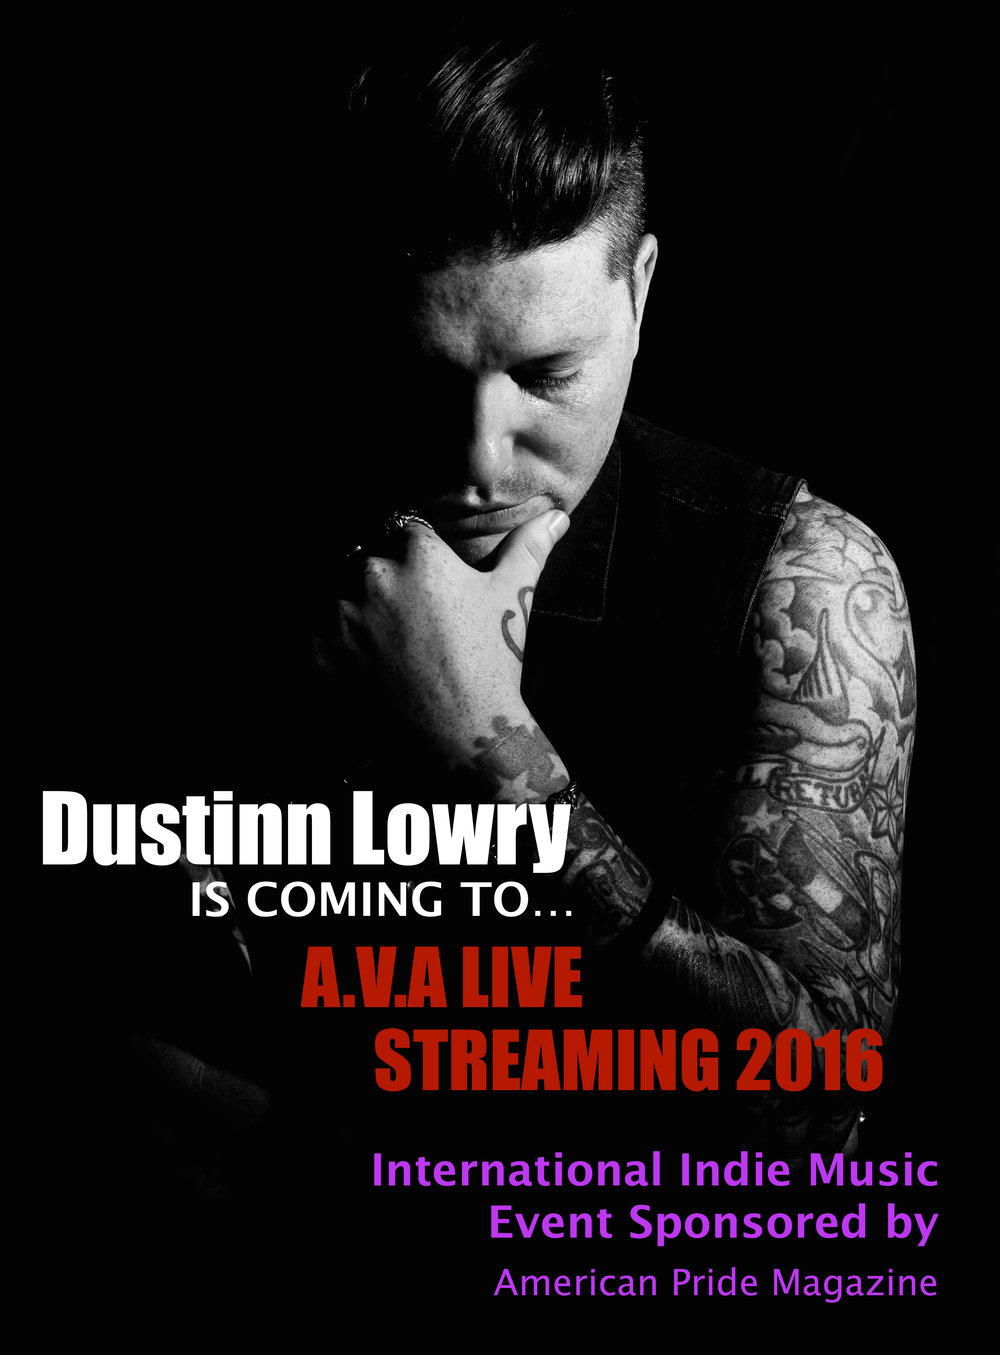 Dustinn Lowry AVA Live Radio Streaming 2016.jpg